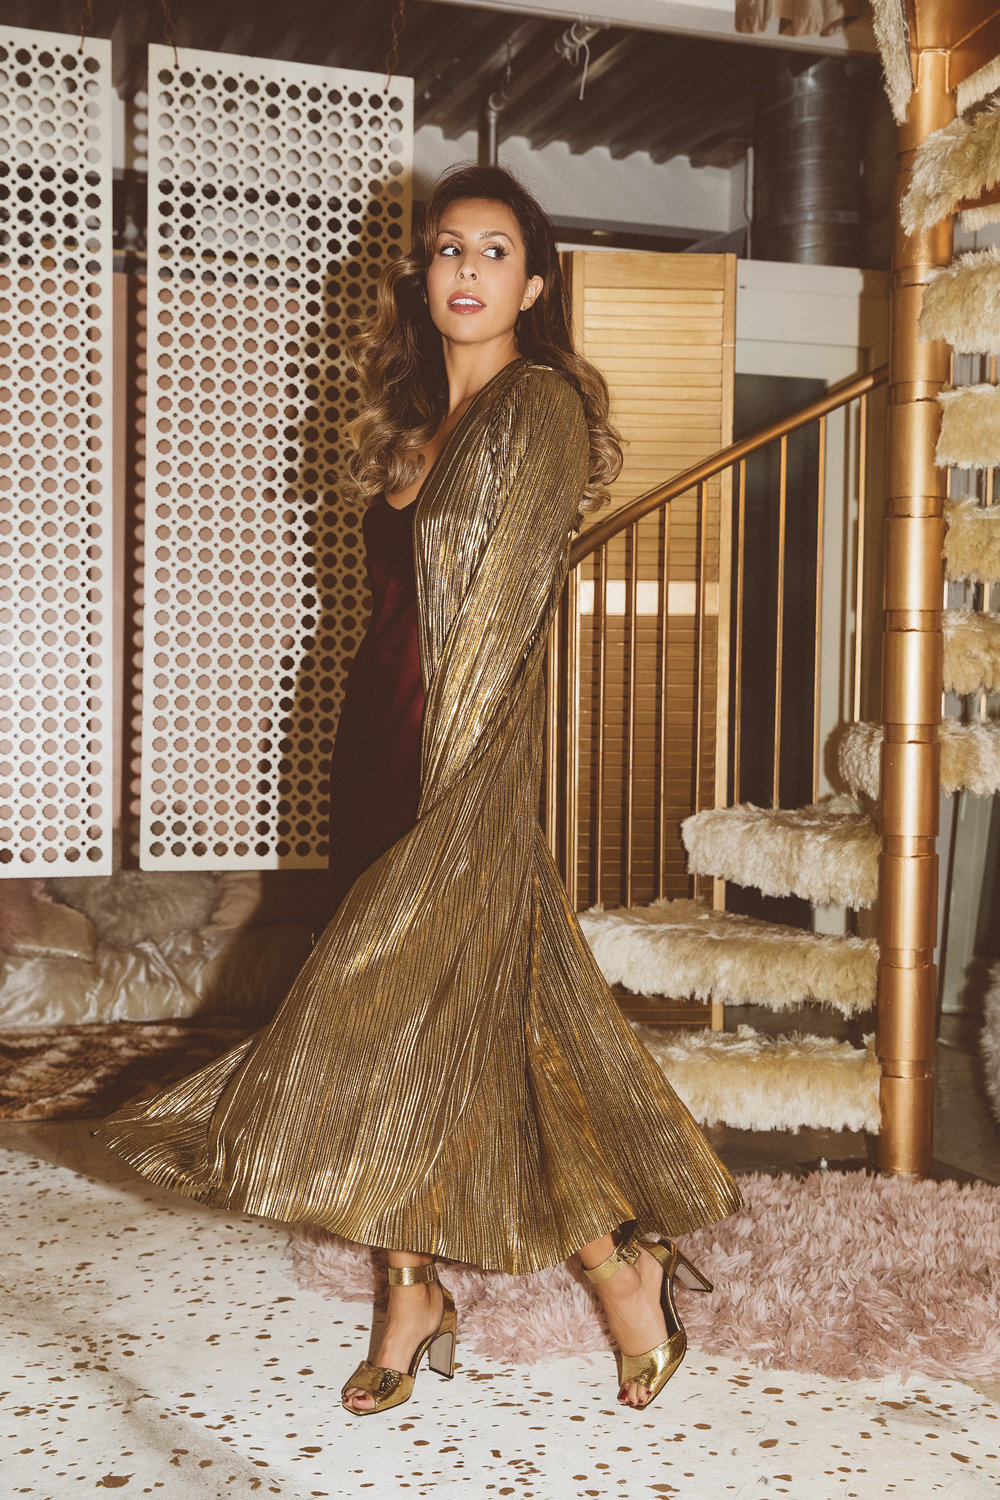 House of Harlow Metallic Duster - holiday outfit ideas